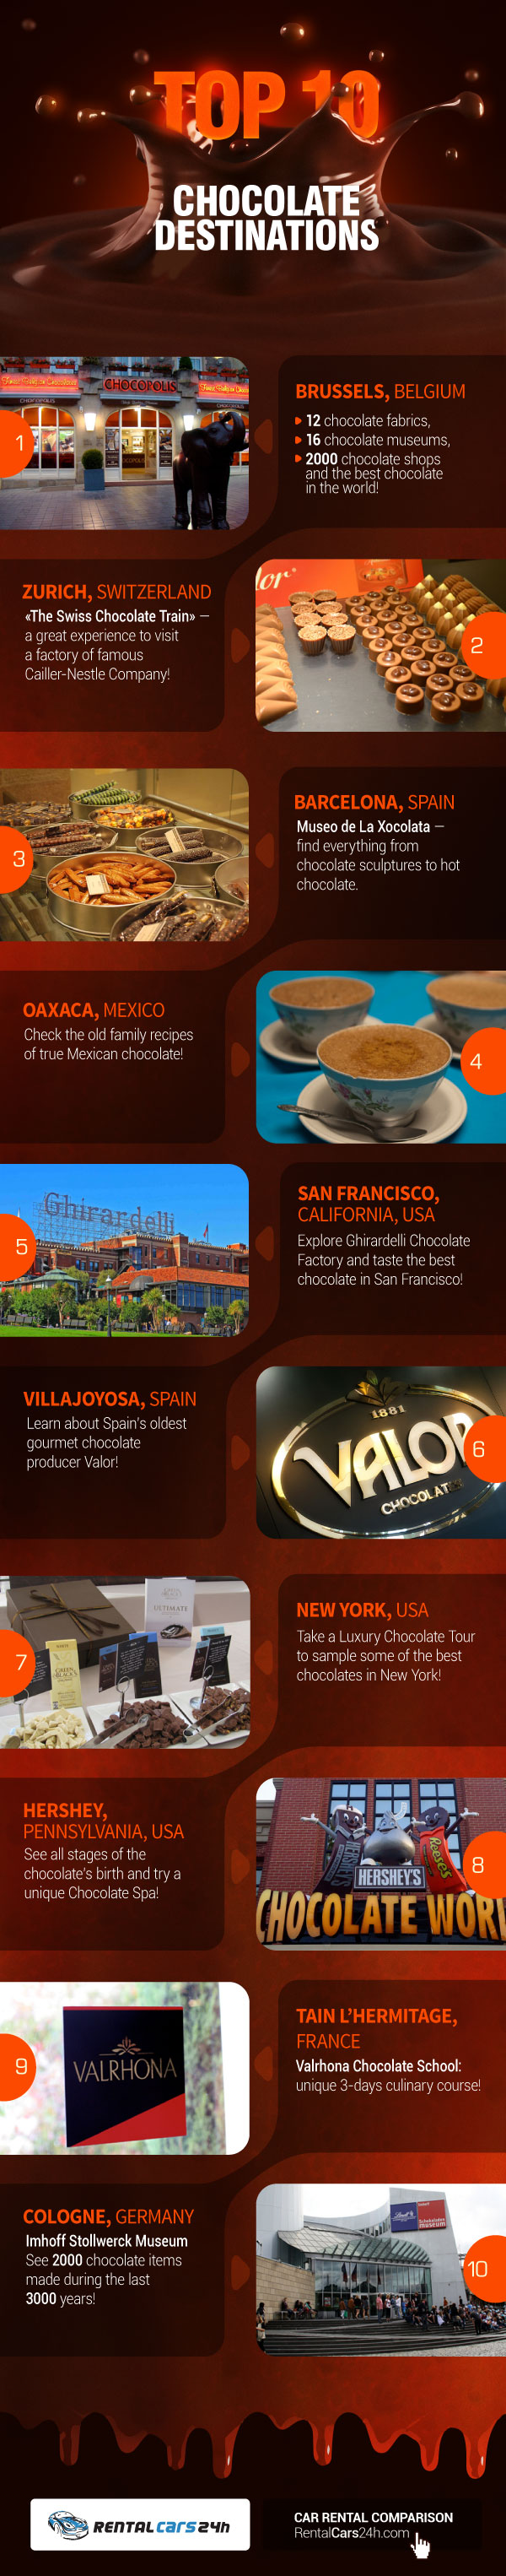 Choco TOP 10 Chocolate Destinations